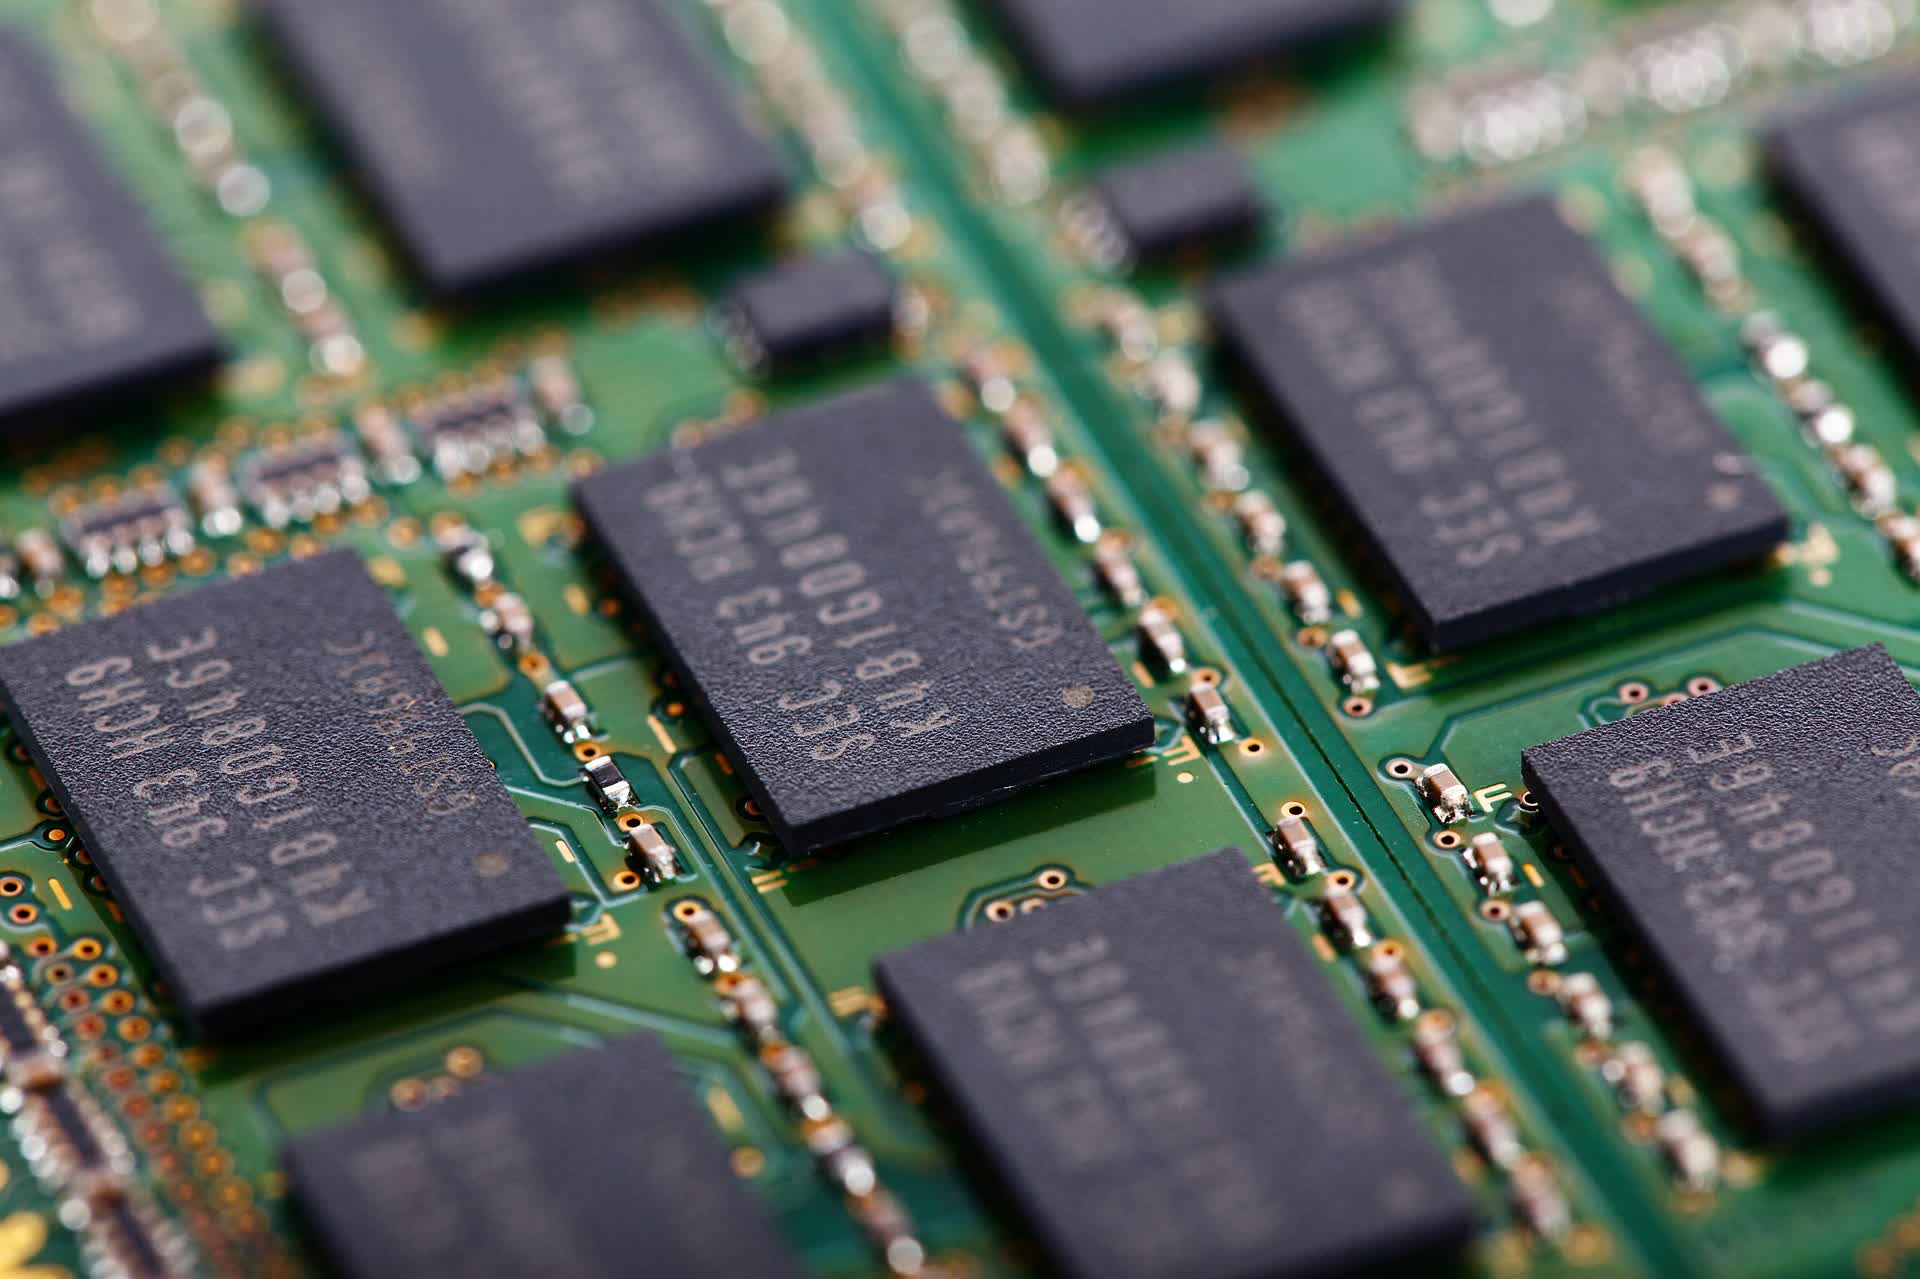 DRAM prices are expected to fall in the coming months due to oversupply